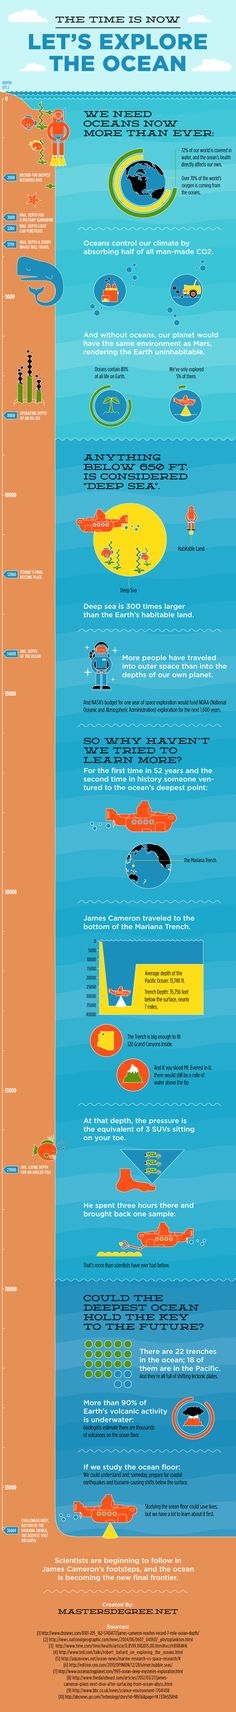 Let's Explore the Ocean by mastersdegree.net #Ocean #infographic #mastersdegree